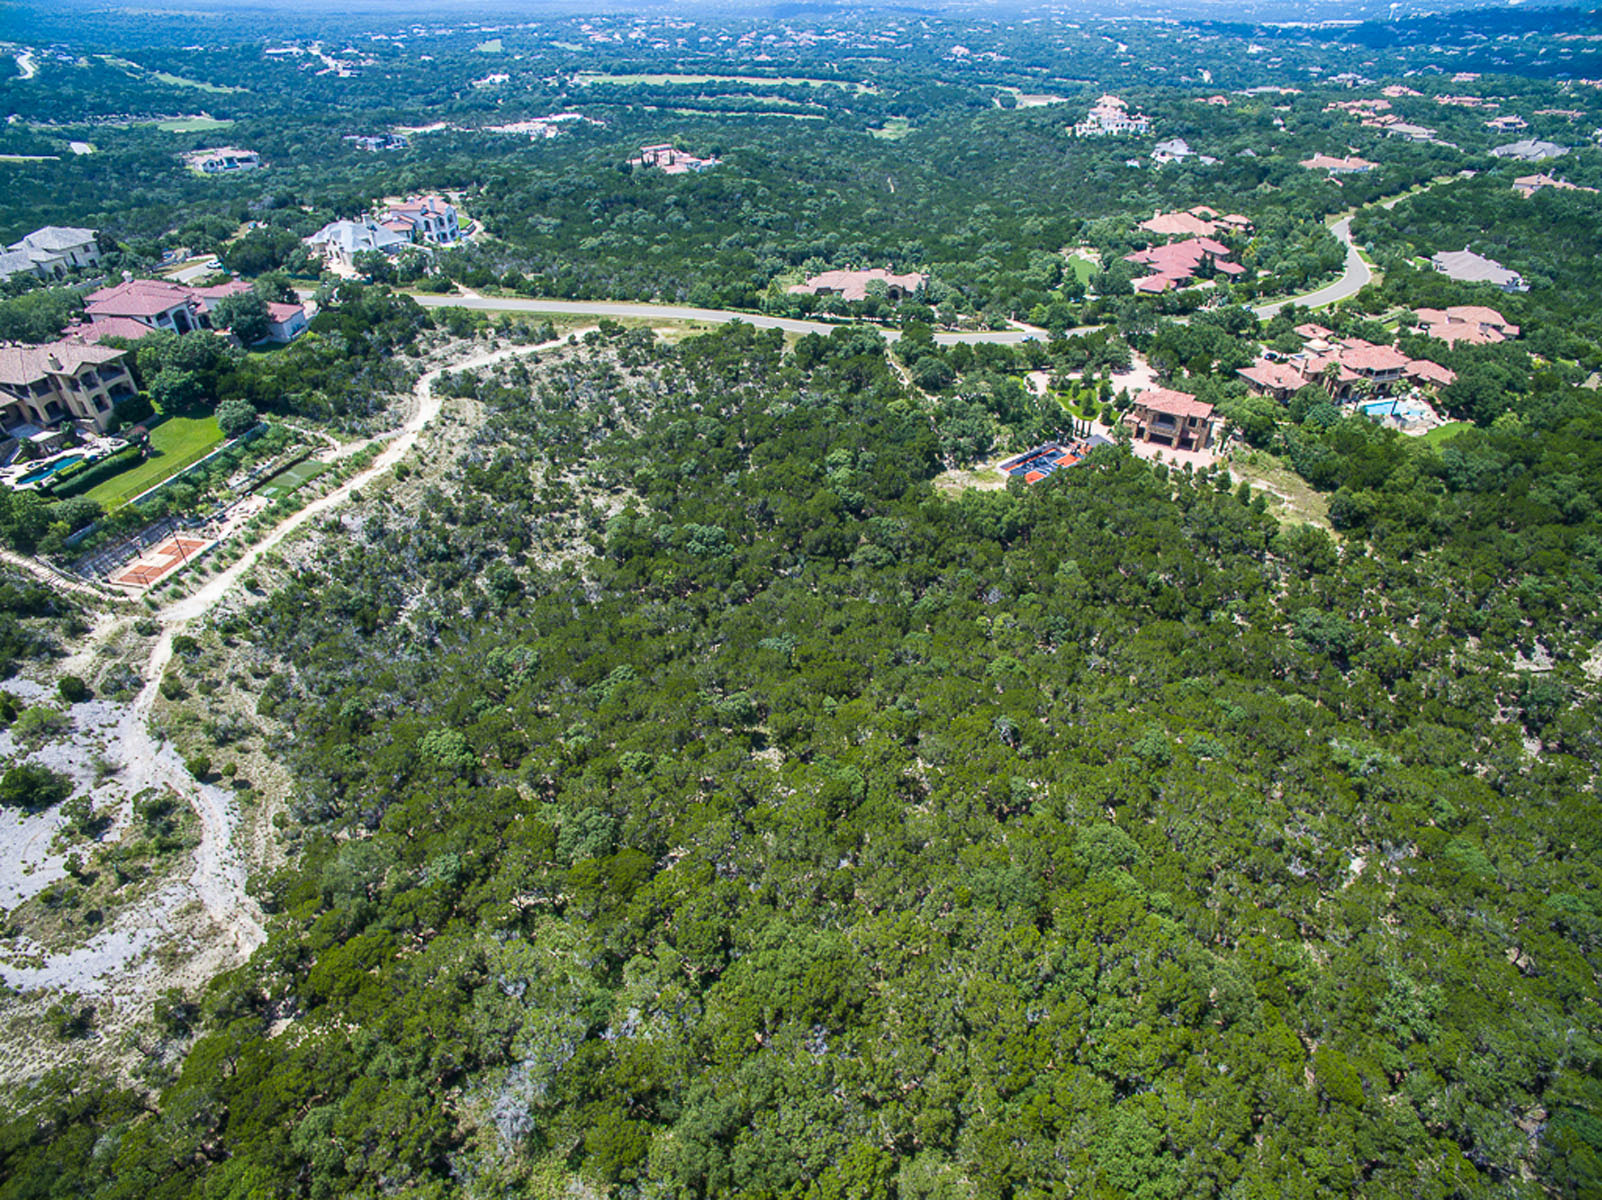 Terrain pour l Vente à Hill Country and Valley Views 4509 Mirador Dr Barton Creek, Austin, Texas, 78735 États-Unis